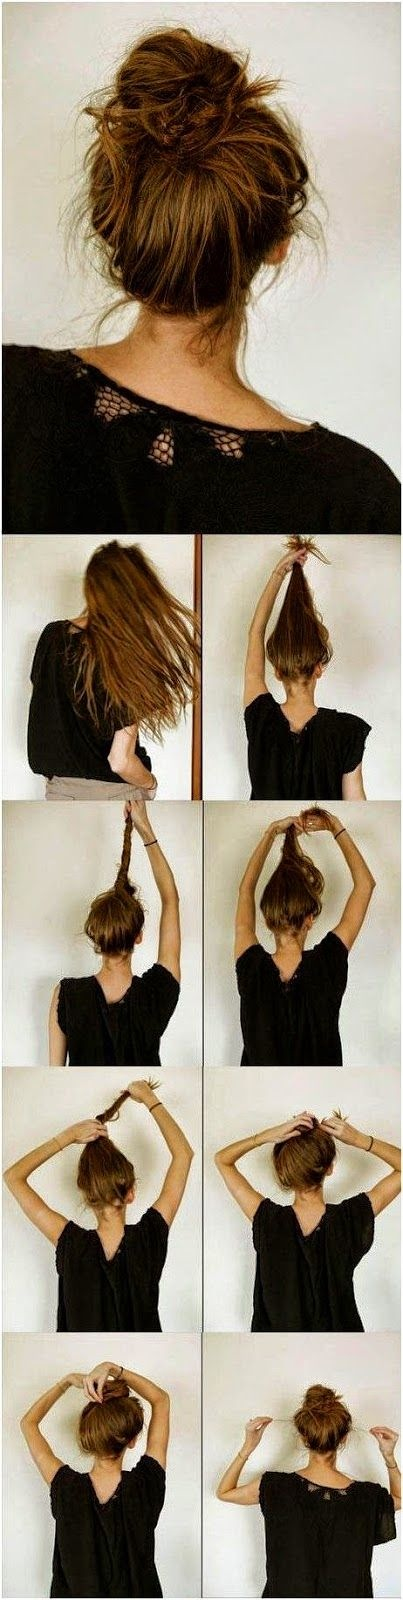 7 Easy Steps To Make This Messy Bun For Long Hair | Thick hair styles